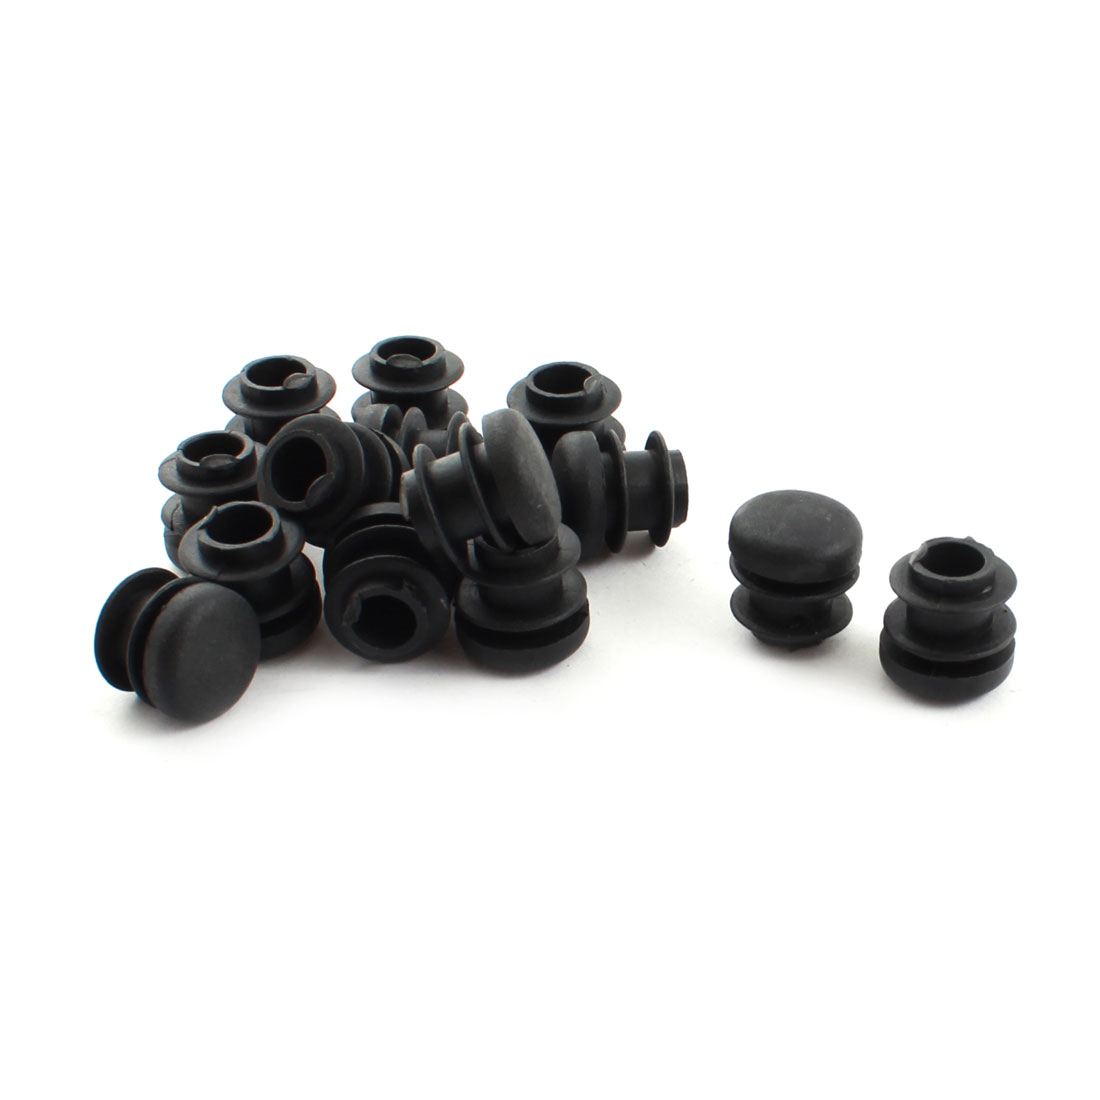 15 Pcs 16mm Diameter Black Plastic Blanking End Caps Round Tubing Tube Insert